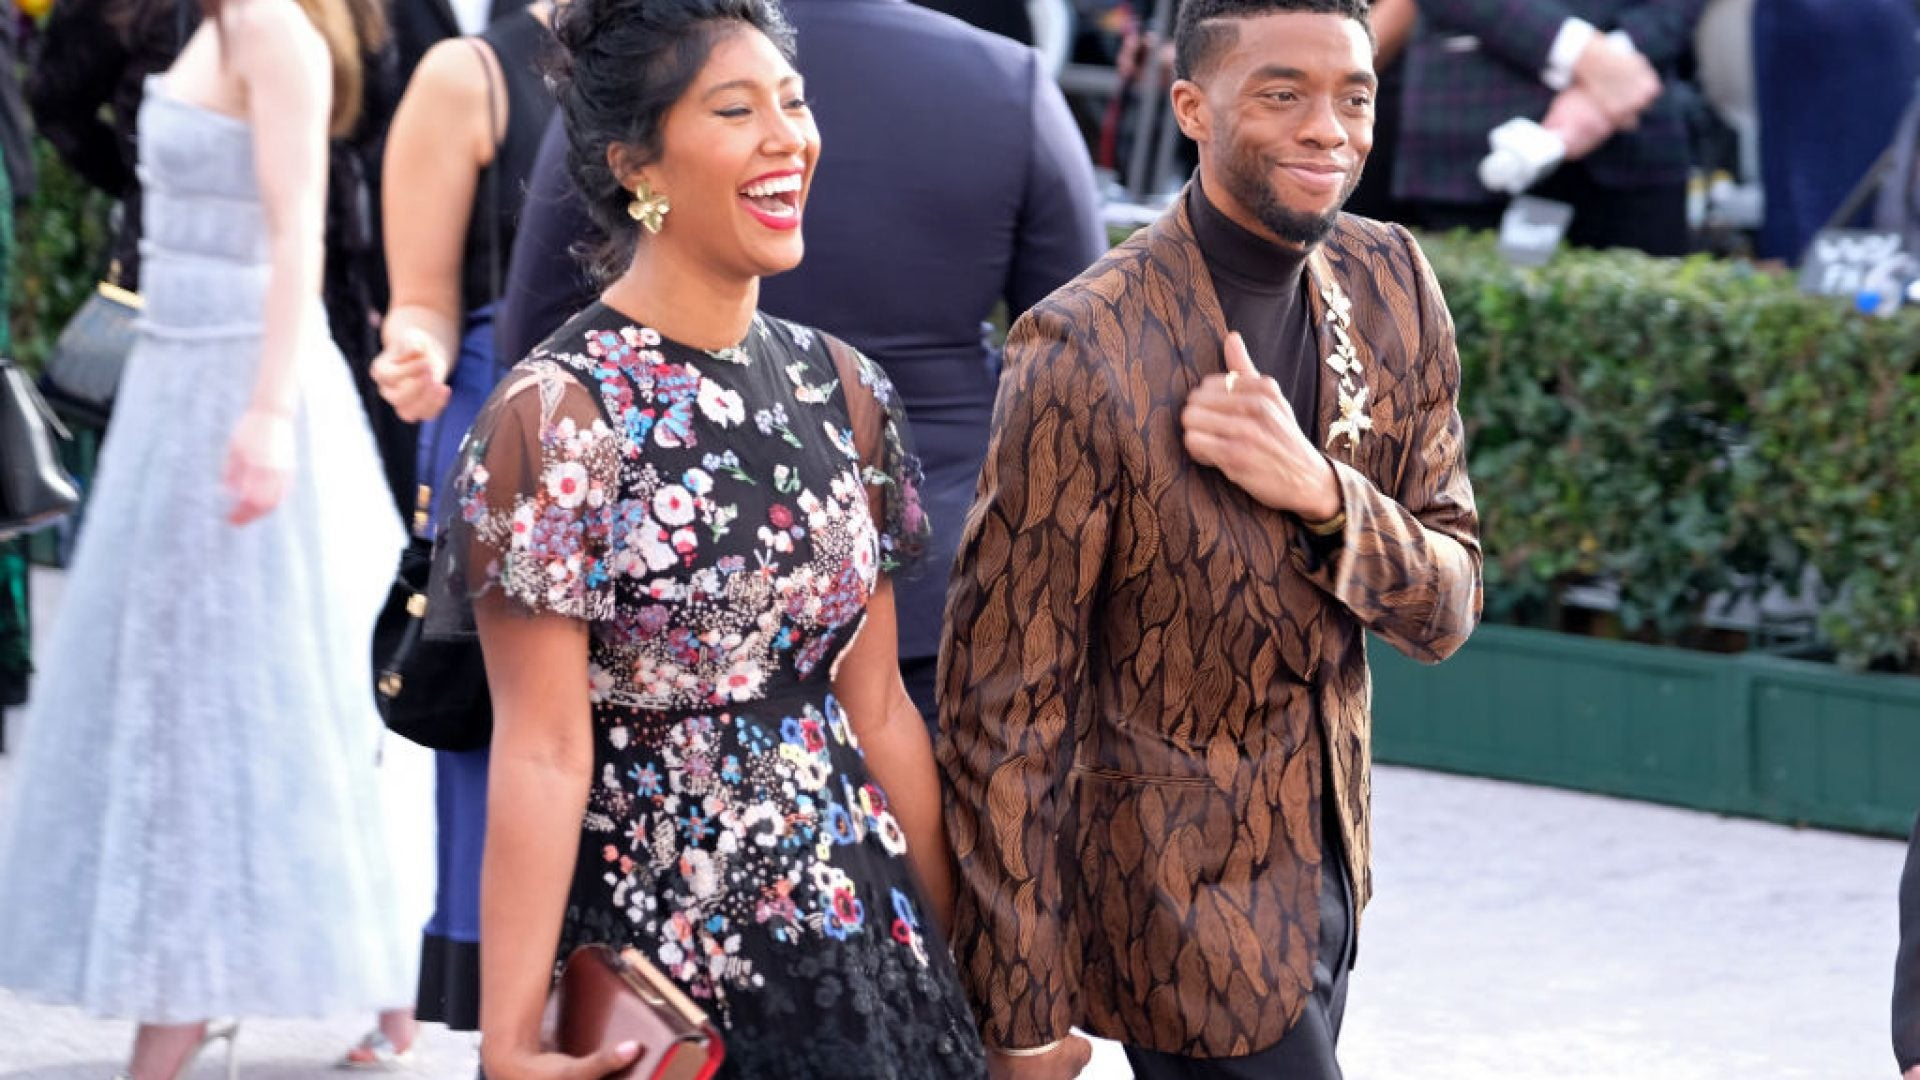 Chadwick Boseman's Widow Pays Tribute To Late Actor At Gotham Film Awards